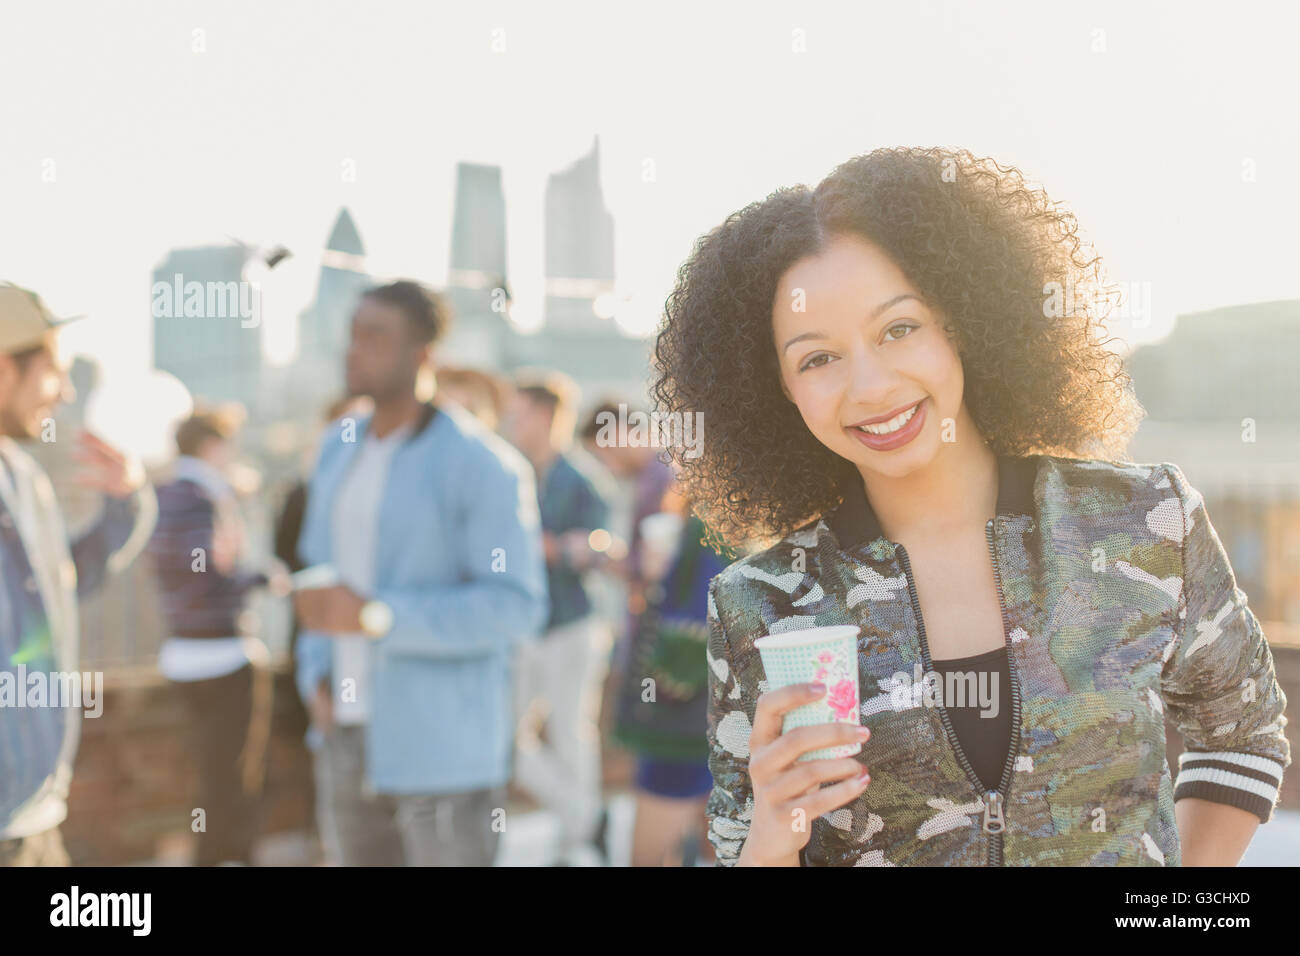 Portrait smiling young woman drinking cocktail at rooftop party - Stock Image